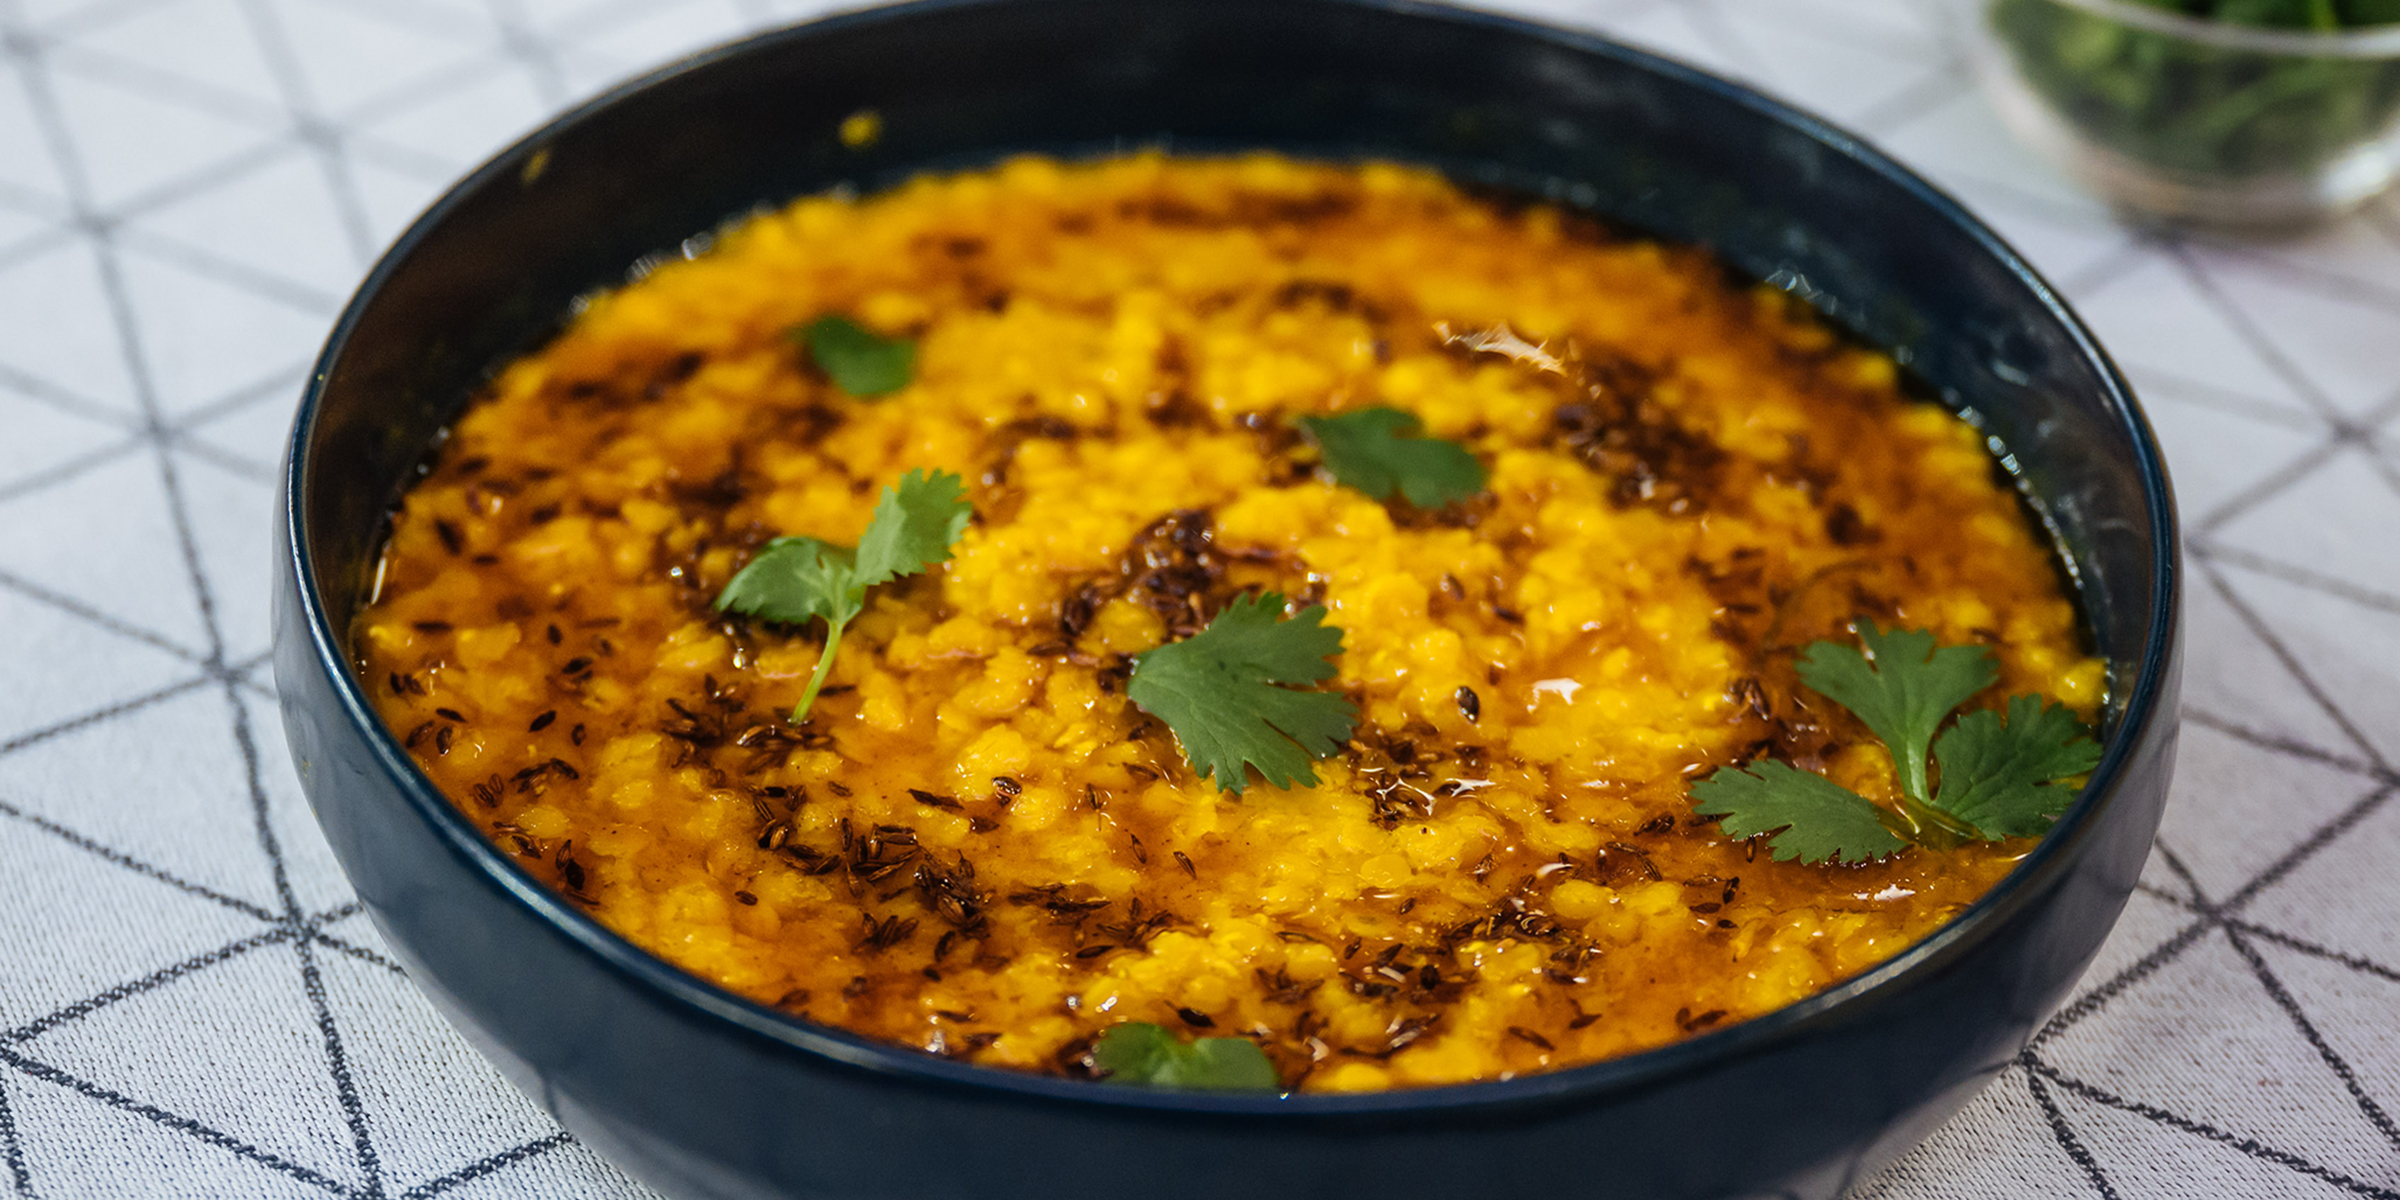 Turn lentils into delicious Indian dal with this quick and easy recipe